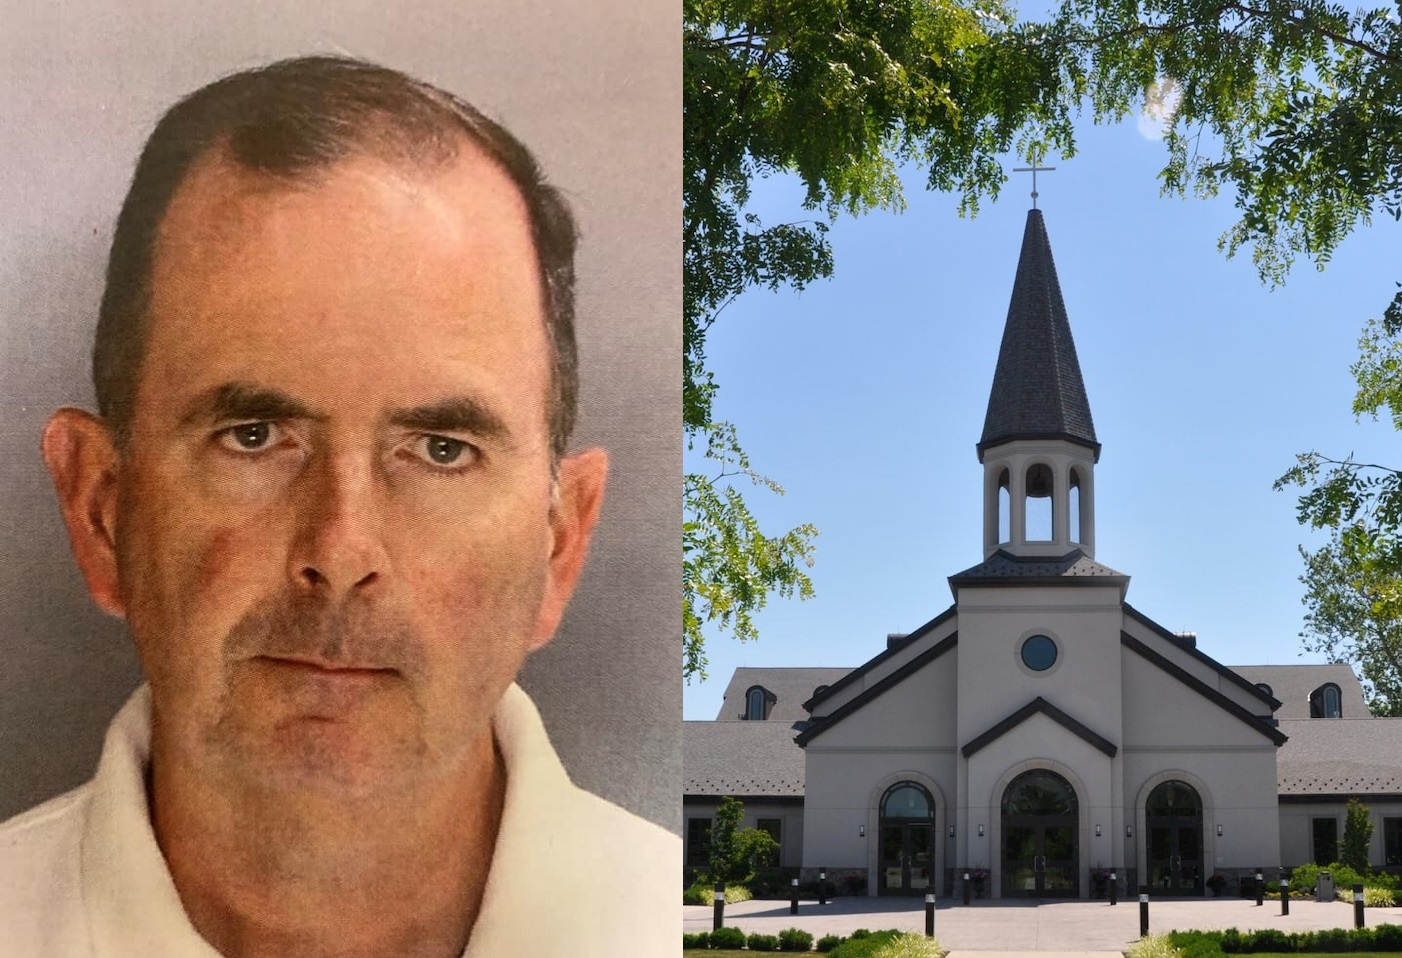 Catholic priest accused of spending church money on Grindr and boyfriends